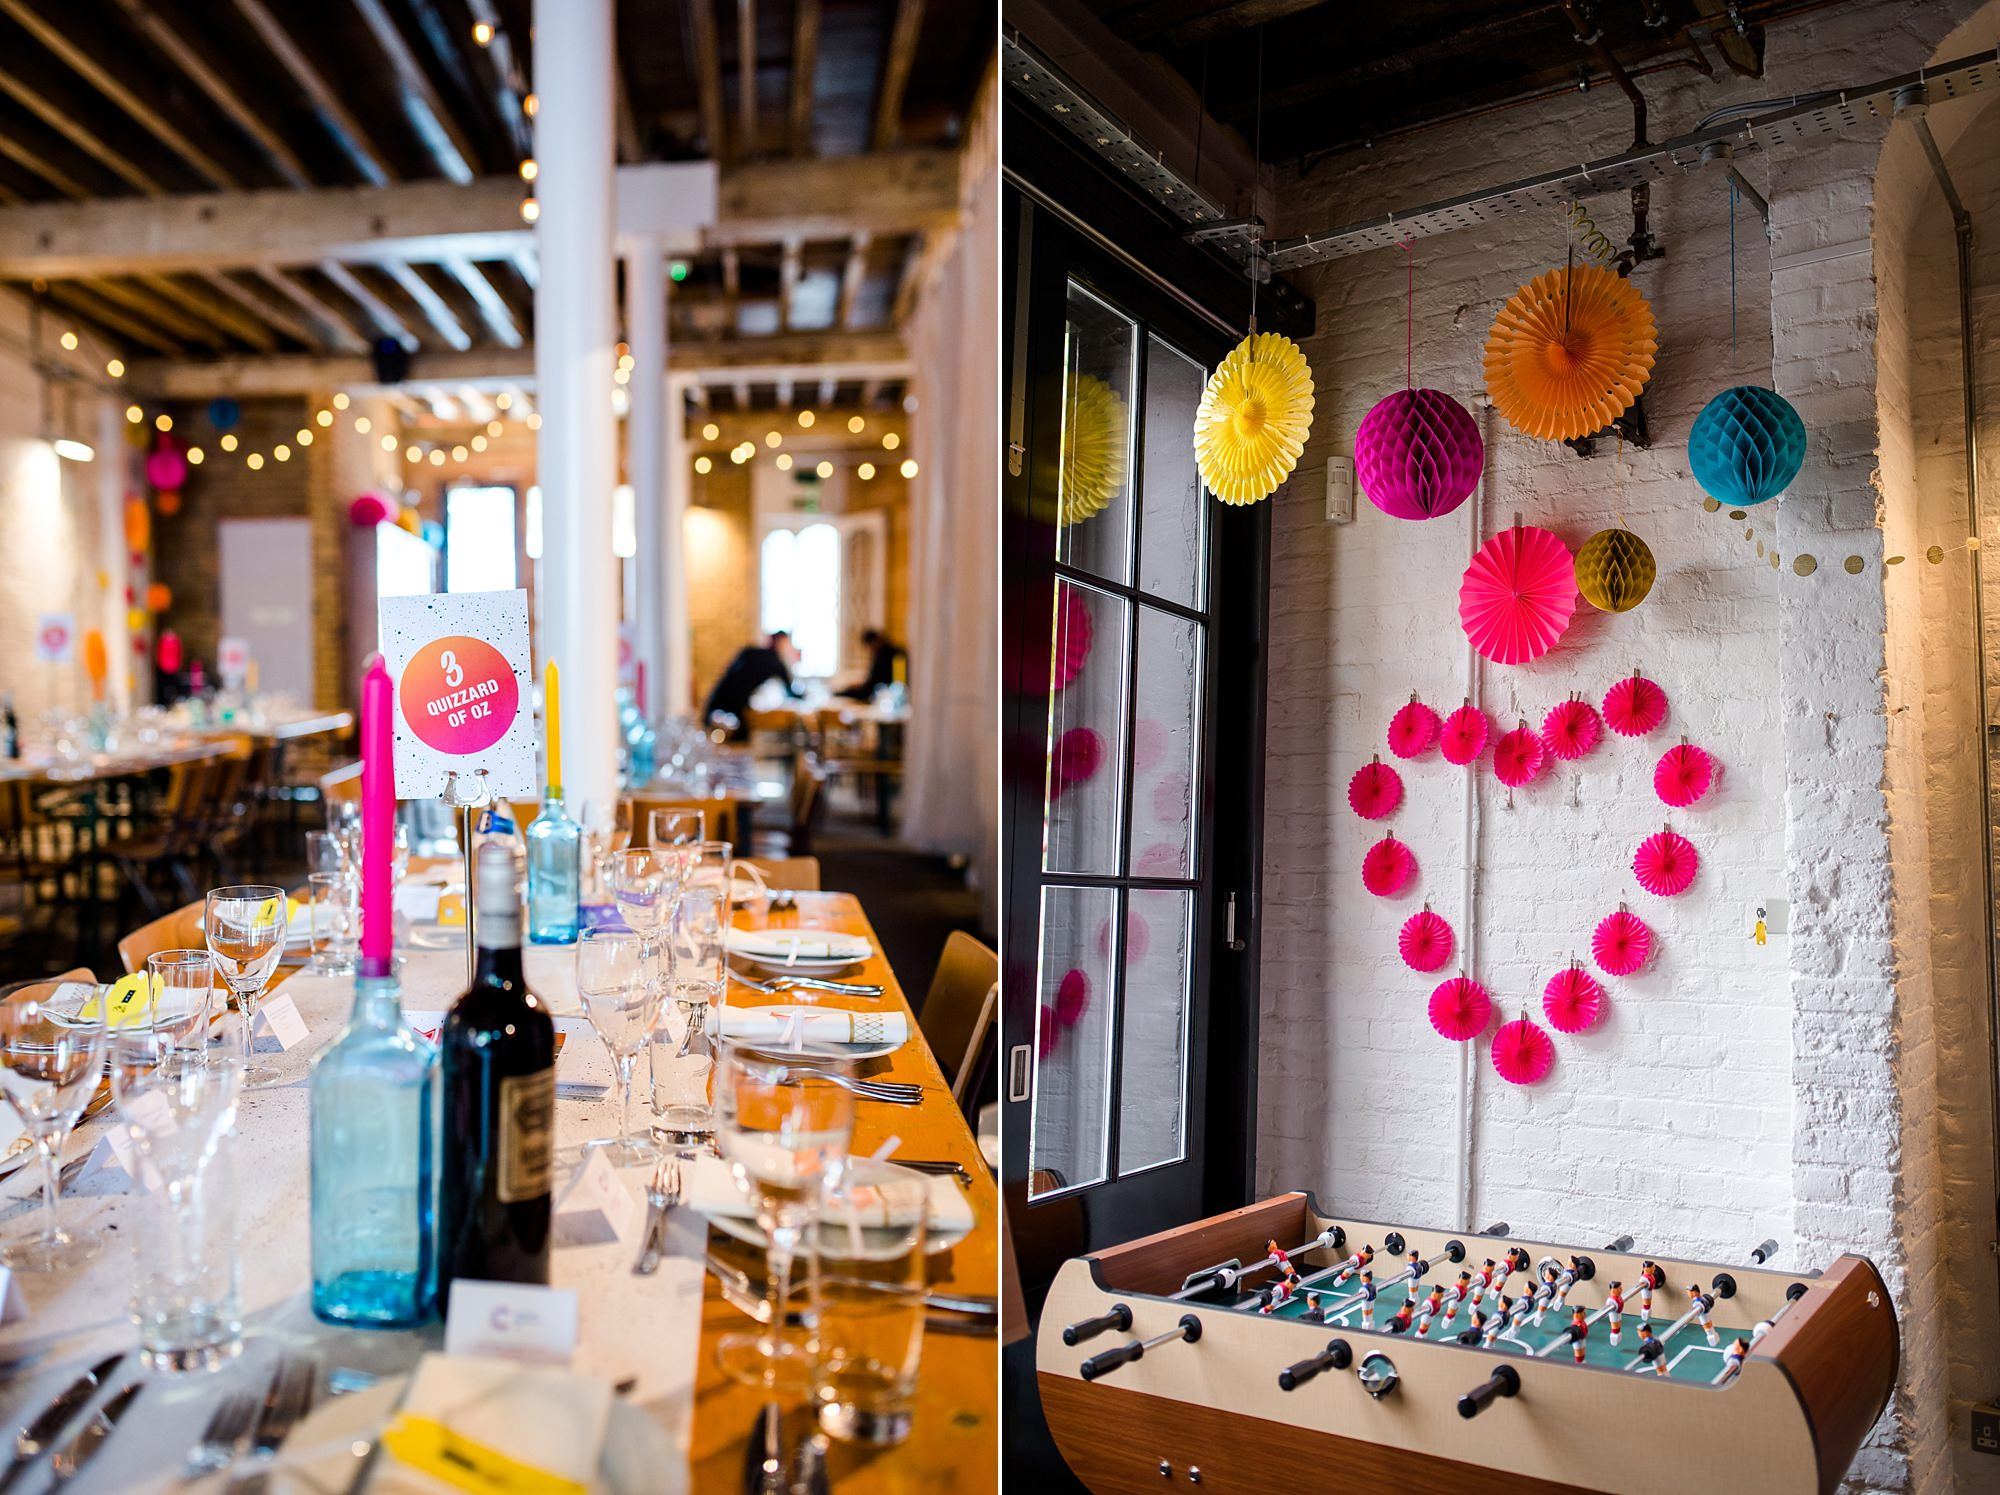 Fun London Wedding bright coloured handmade wall decorations at brixton east